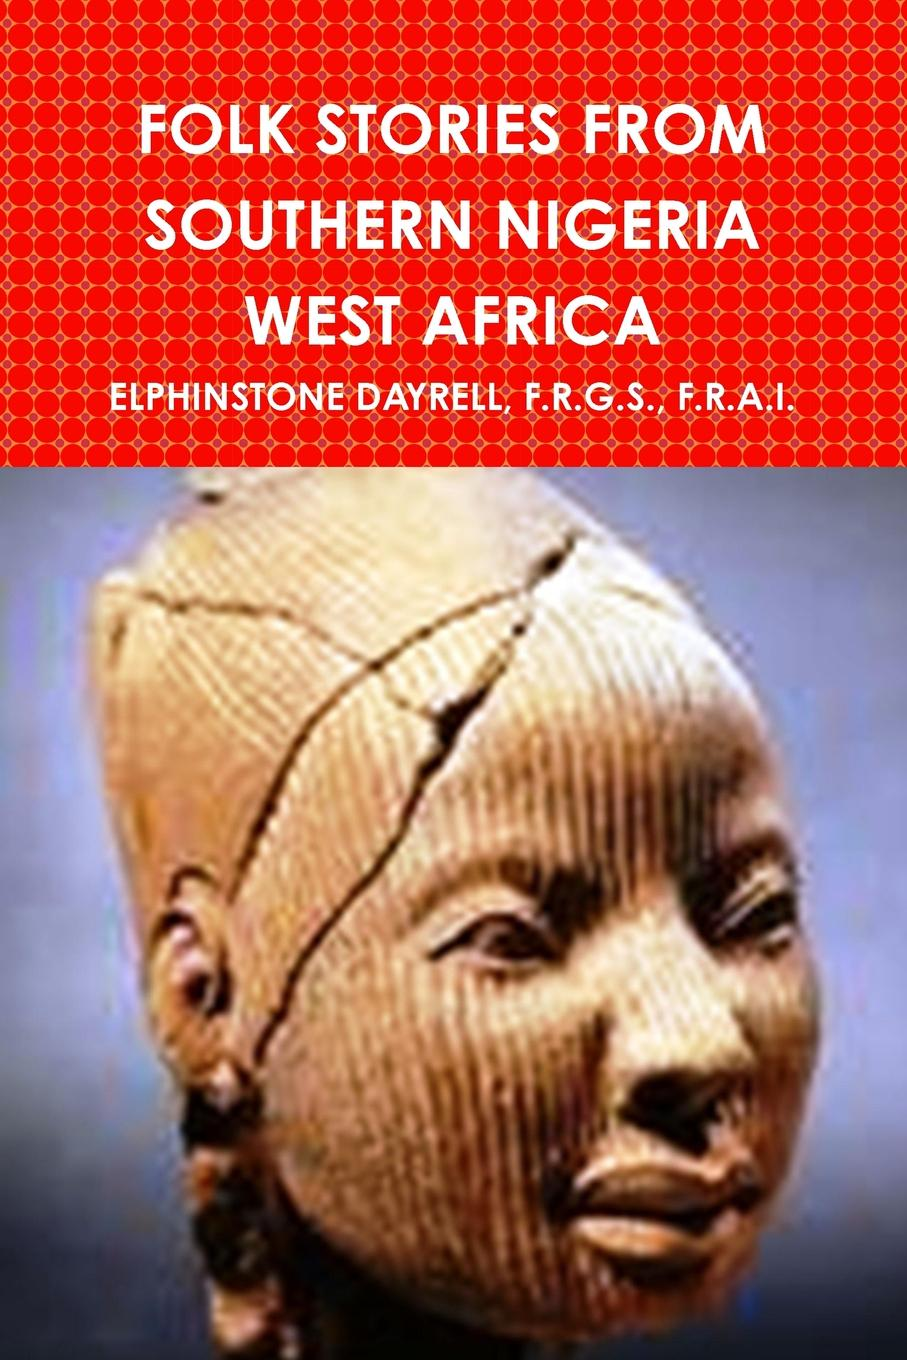 F.R.G.S. F.R.A.I. ELPHINSTONE DAYRELL FOLK STORIES FROM SOUTHERN NIGERIA WEST AFRICA